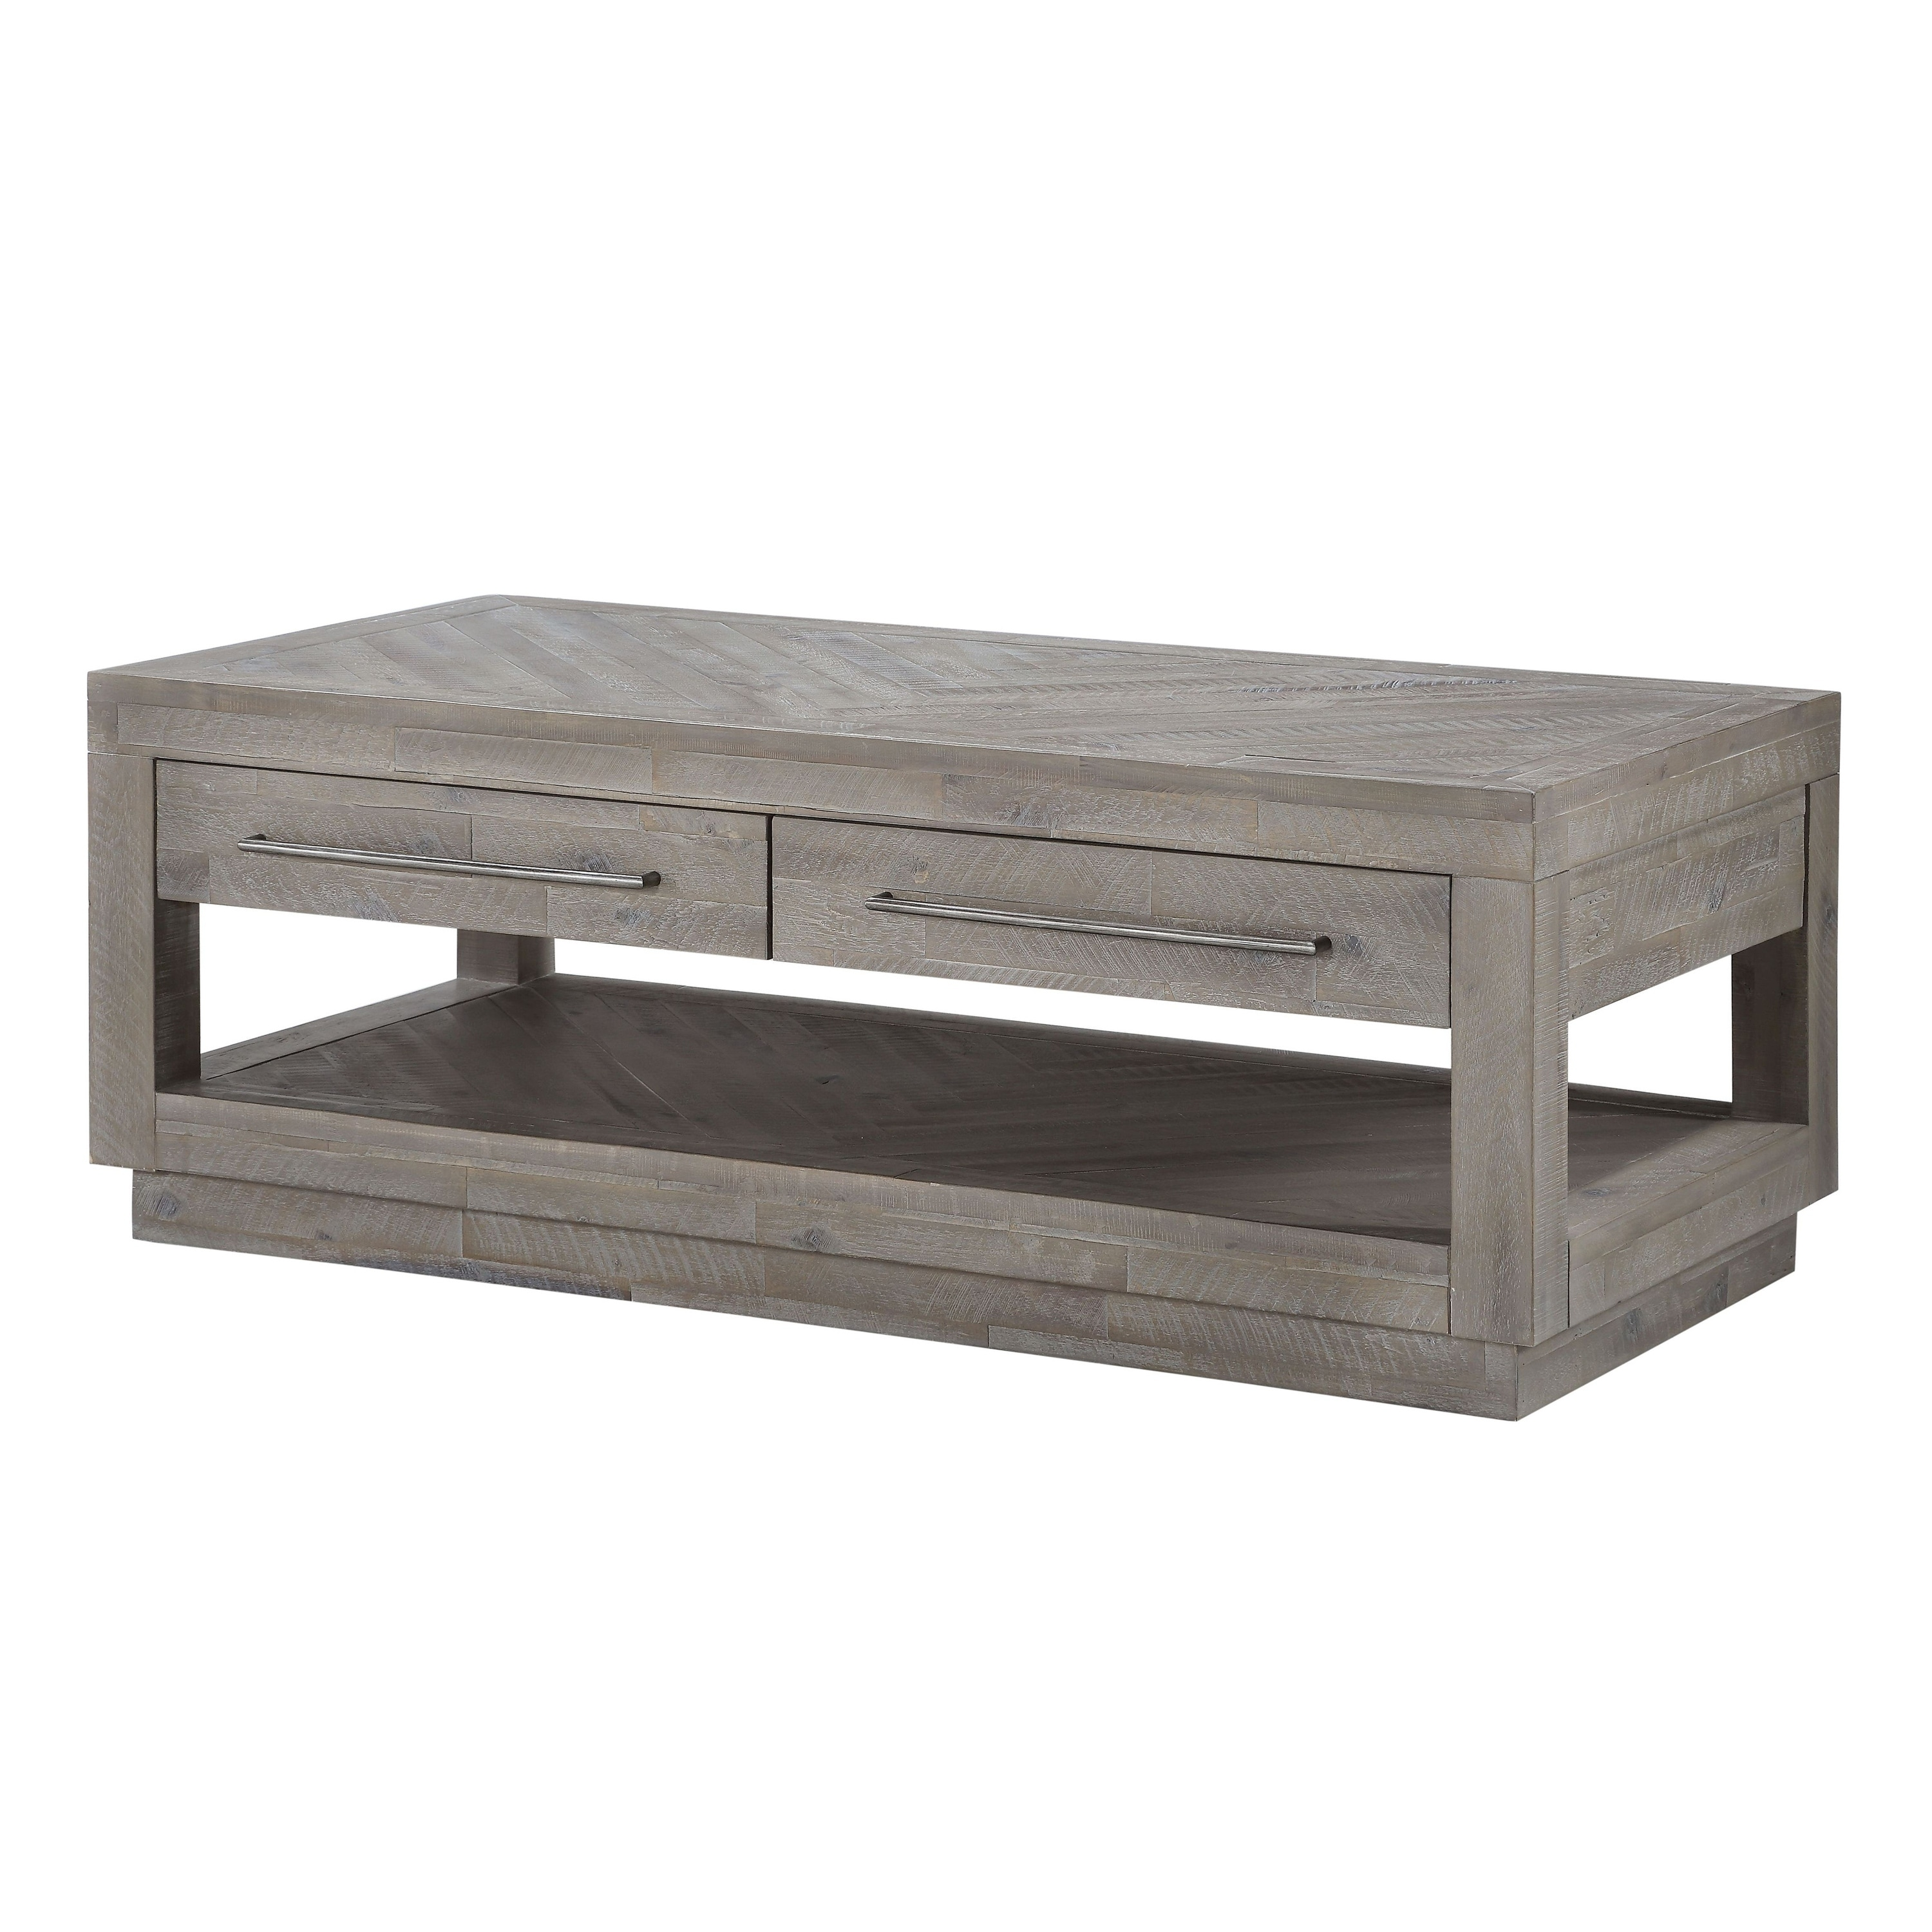 Two Drawer And One Bottom Shelf Coffee Table With Metal Handle Pull Rustic Latte Gray On Sale Overstock 30630911